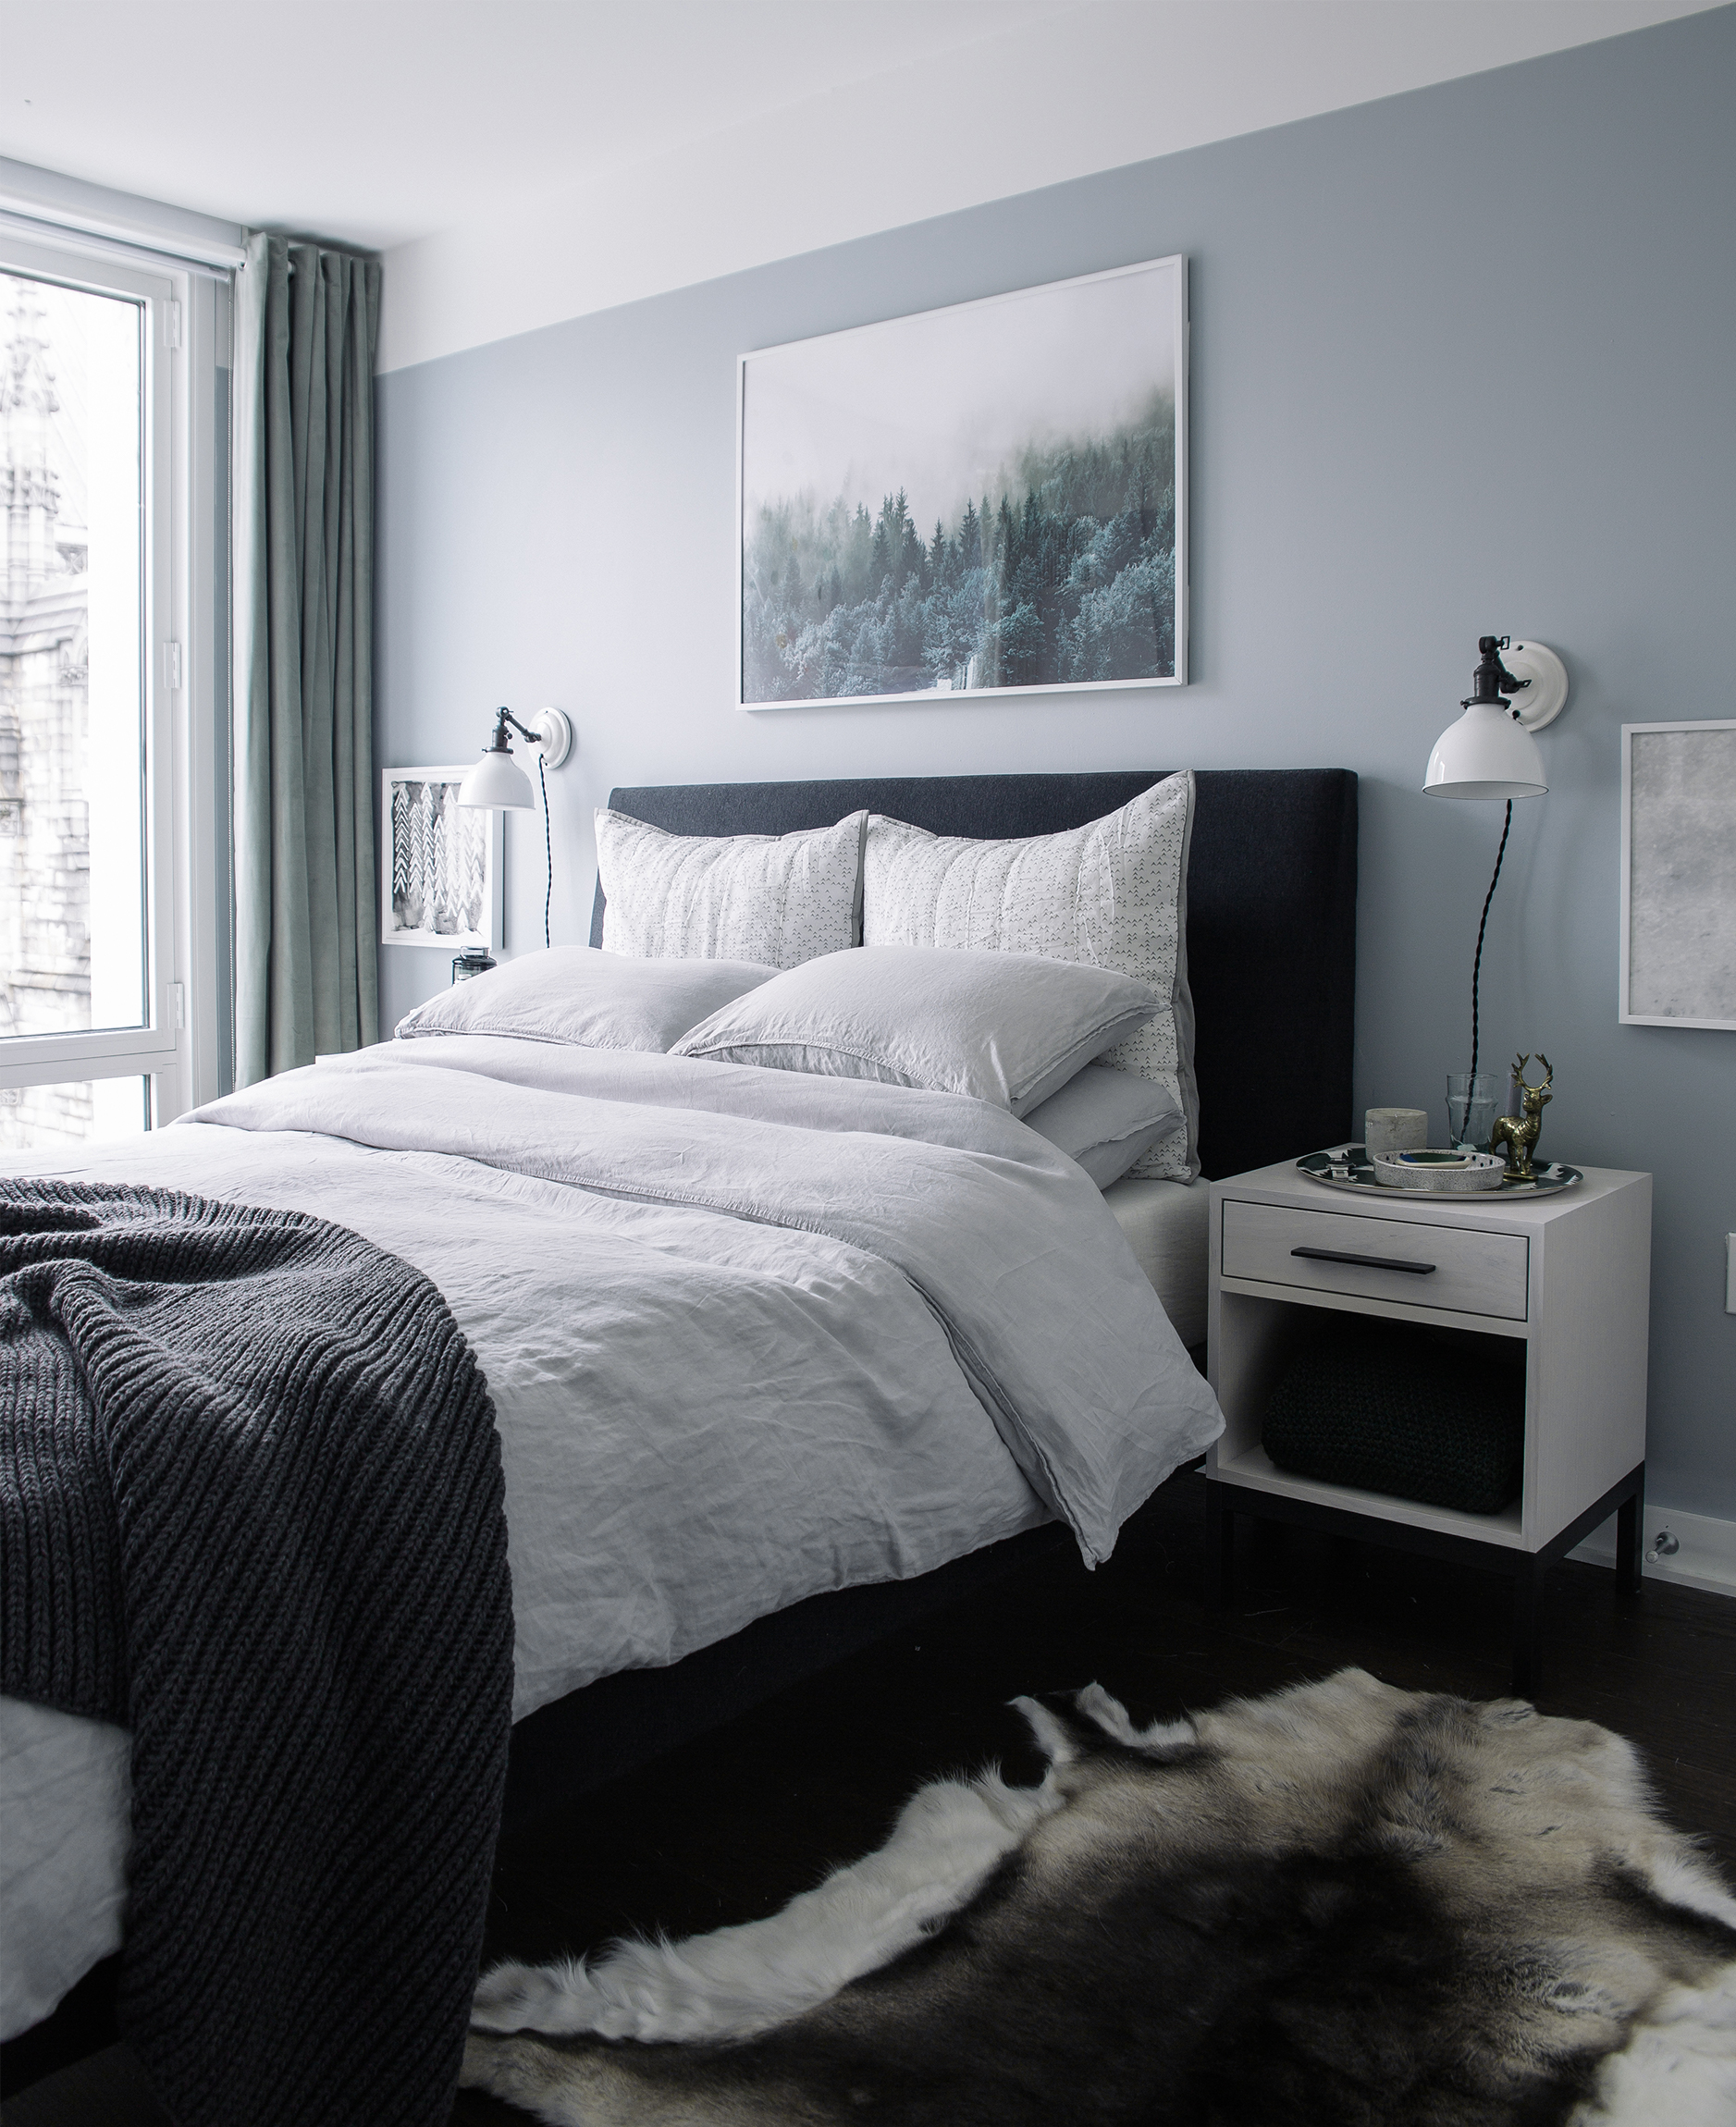 Grey Bedroom Decorating: Bright Bazaar By Will Taylor